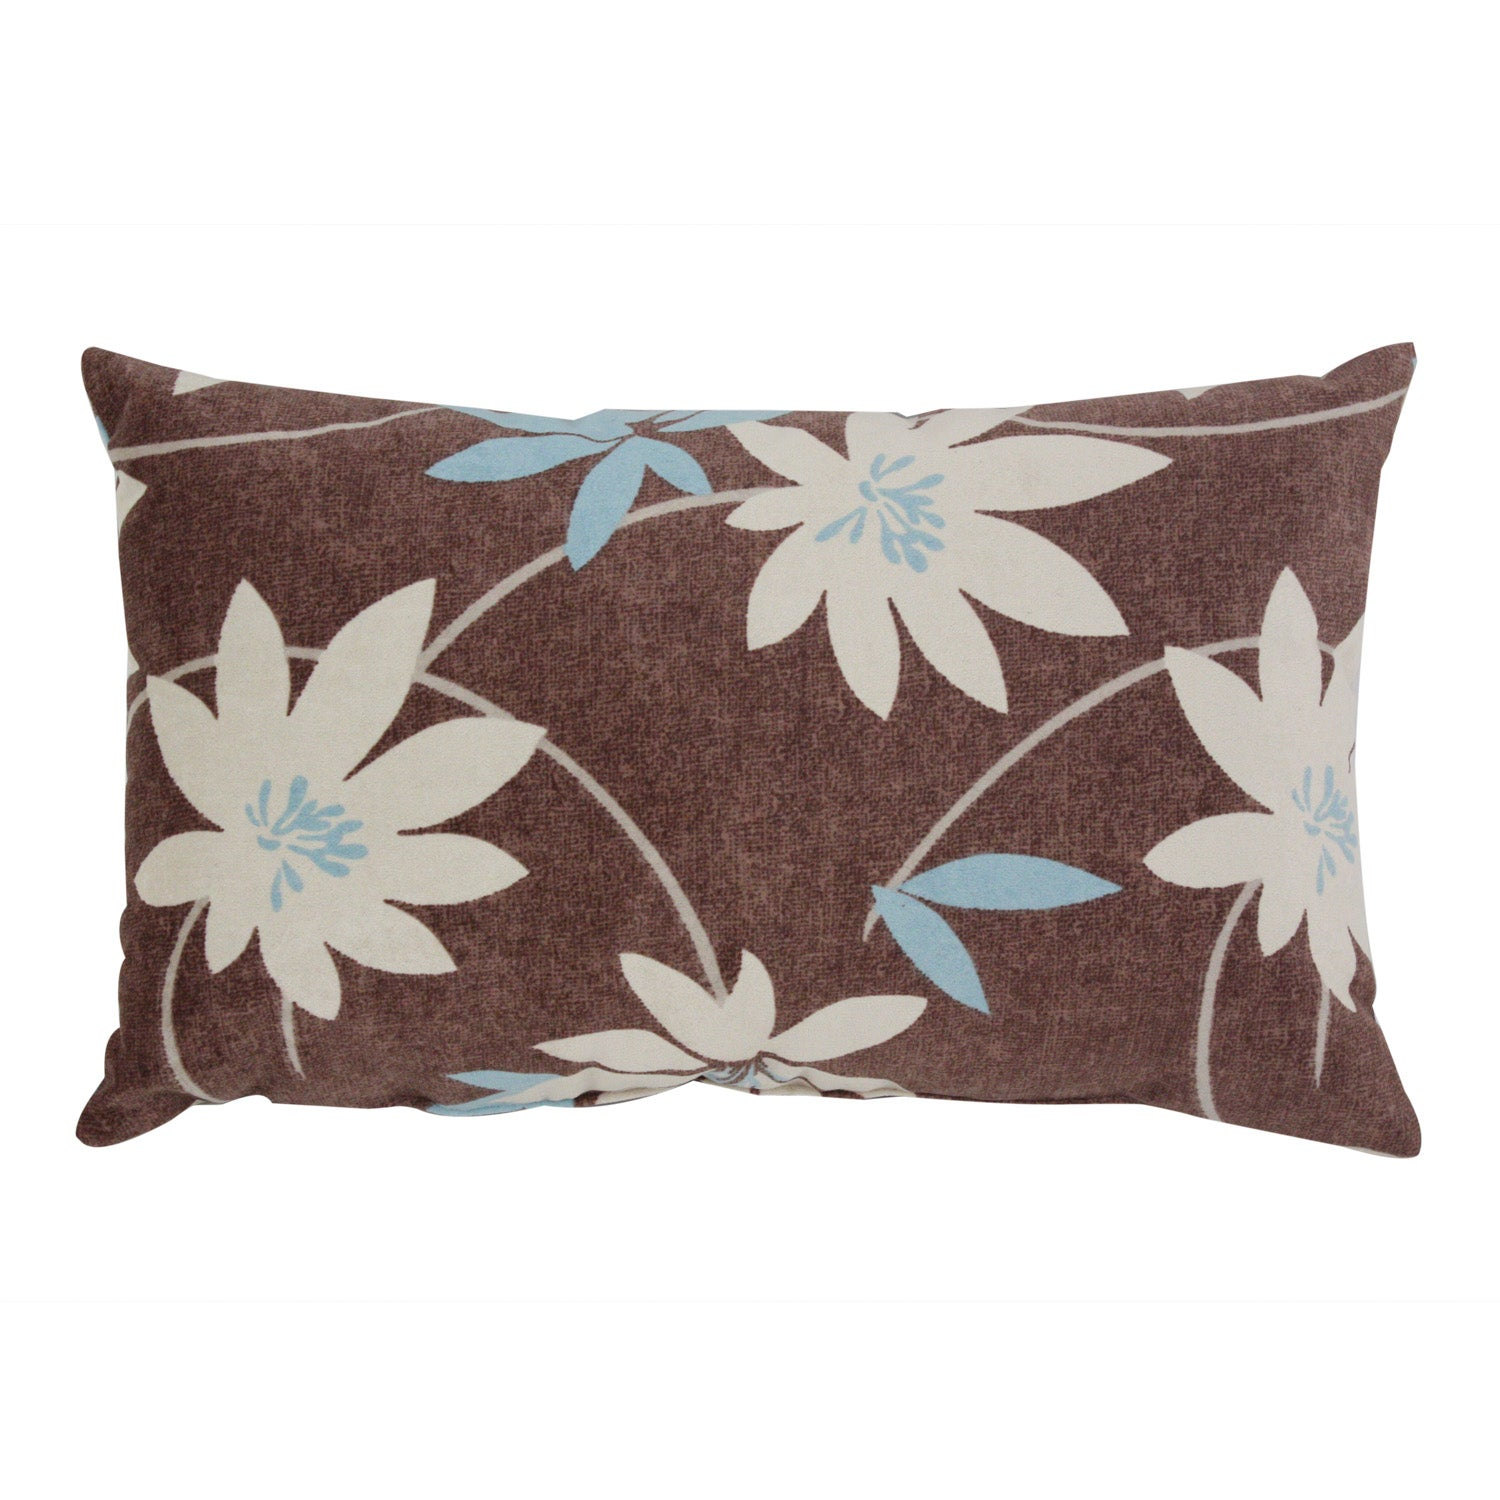 Pillow Perfect Brown Floral Flocked Throw Pillow